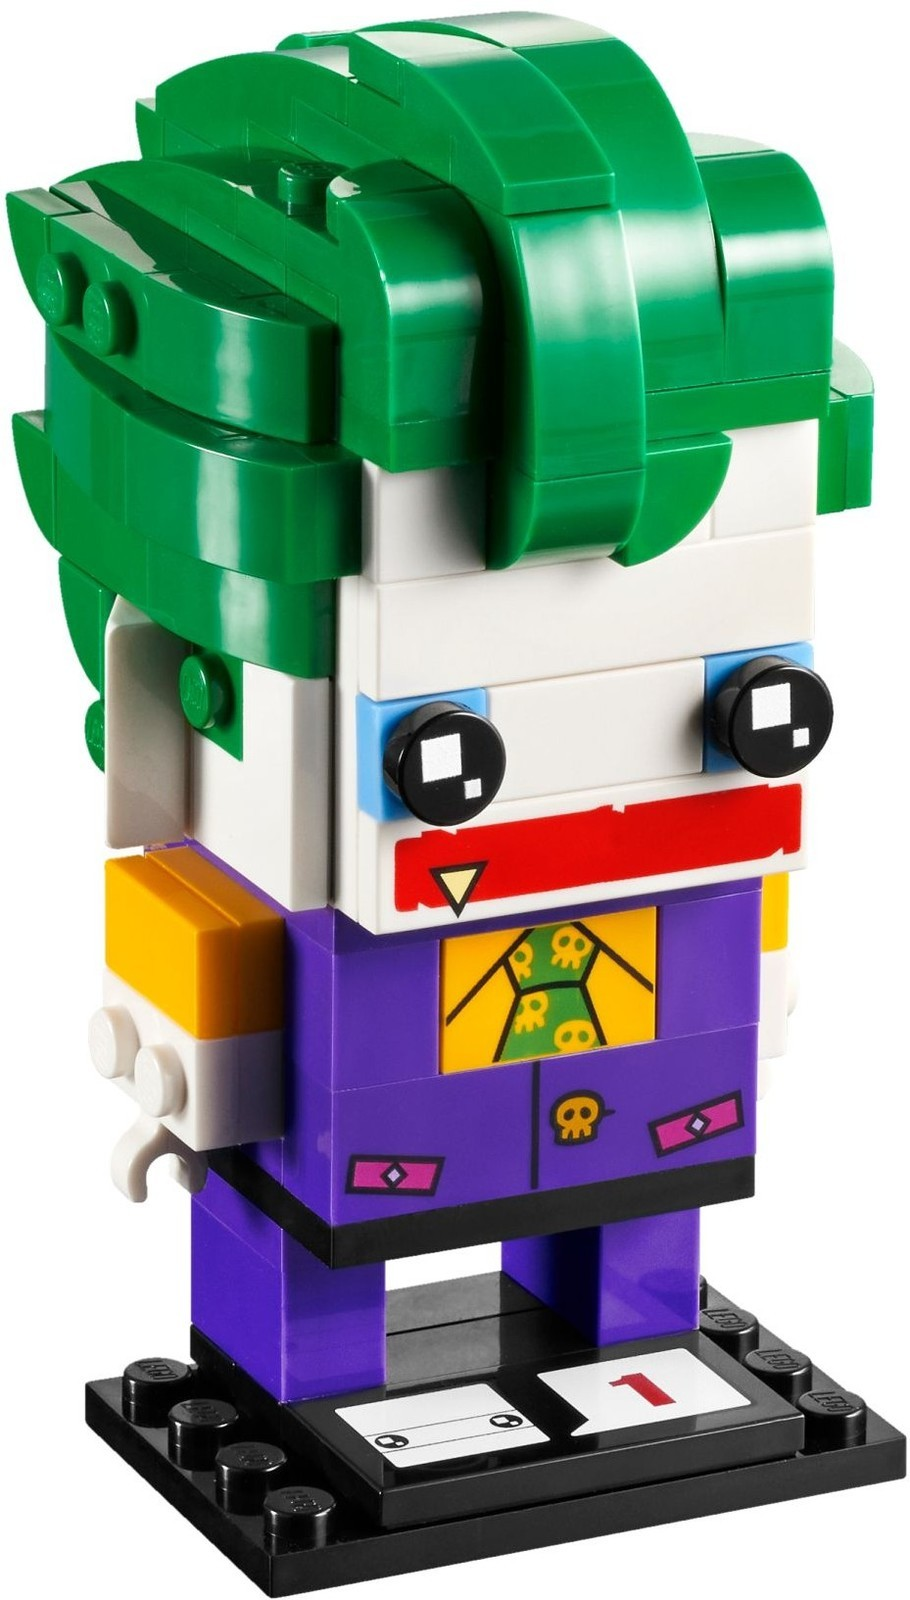 LEGO Brickheadz: The Joker (41588) image